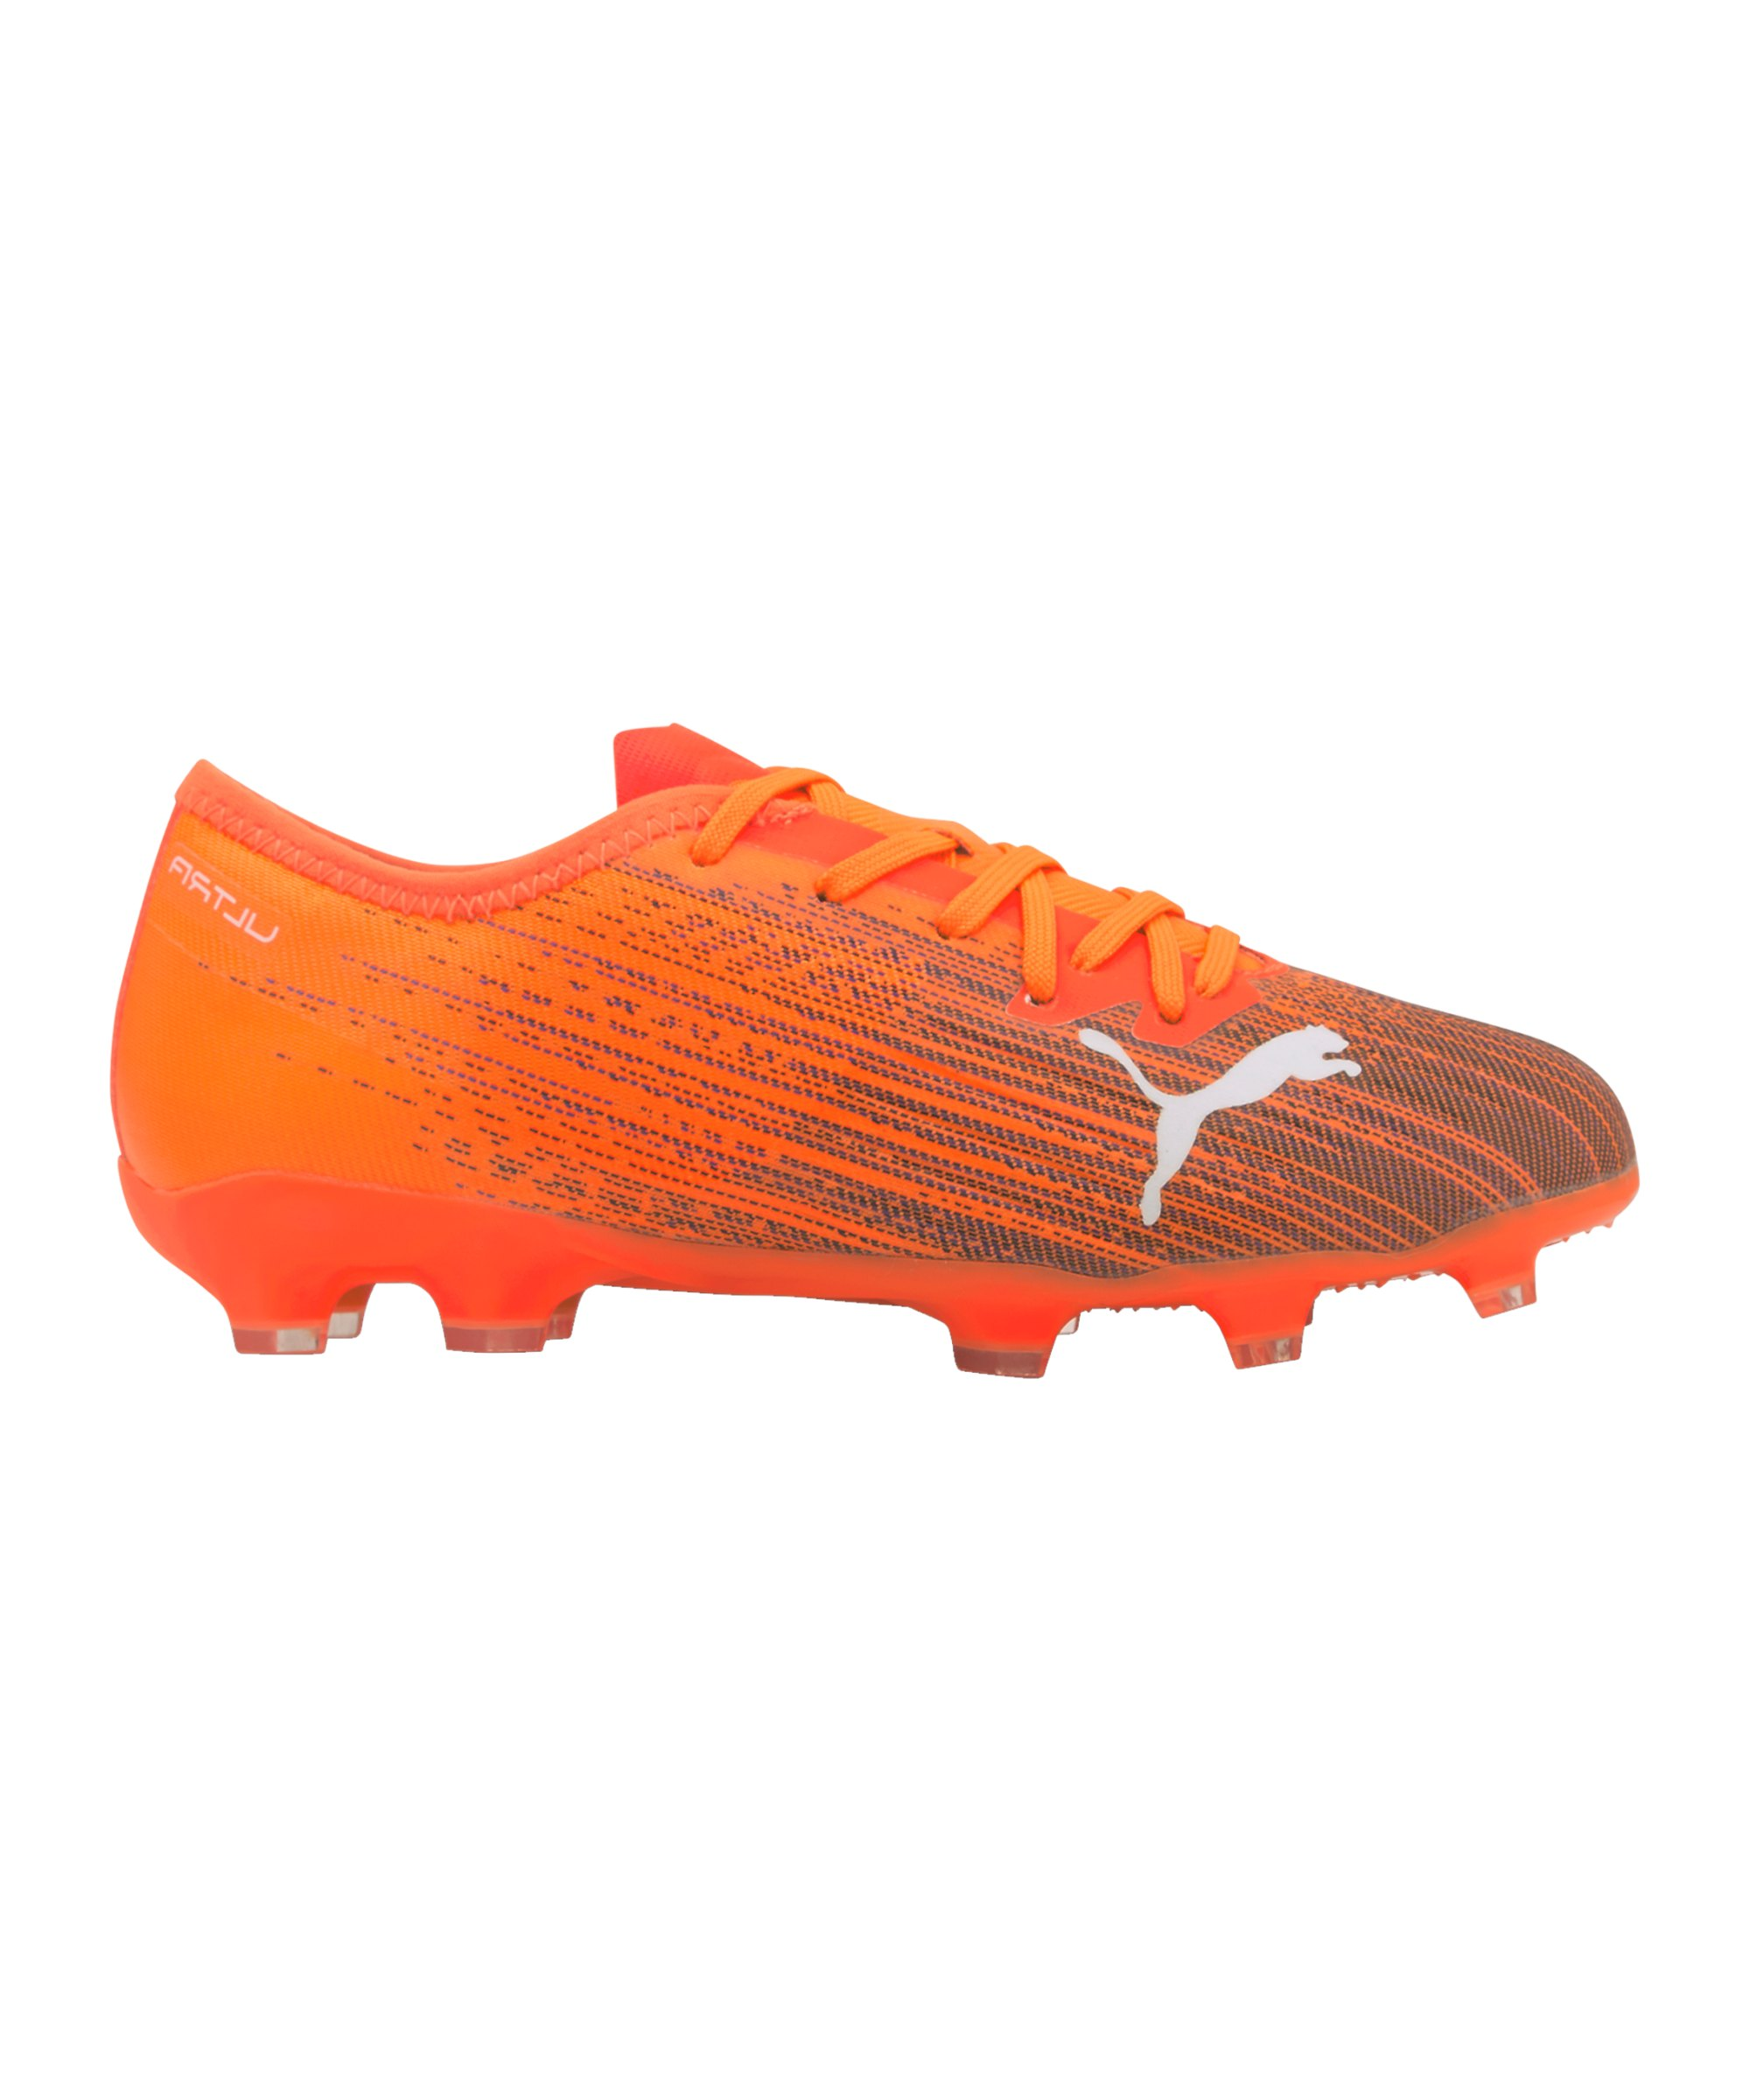 PUMA ULTRA Chasing Adrenaline 2.1 FG/AG Kids Orange F01 - orange